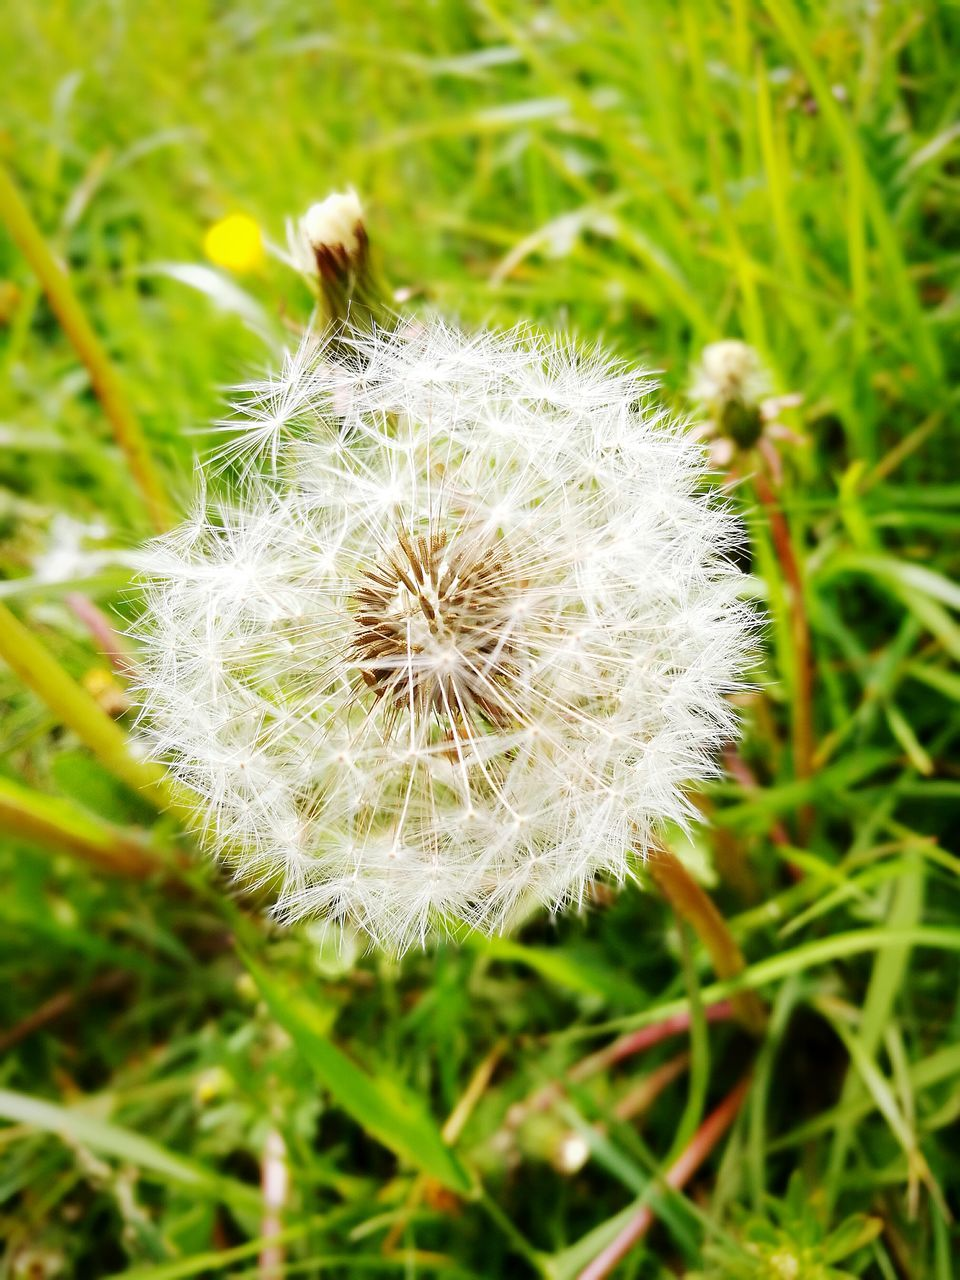 flower, nature, fragility, white color, dandelion, beauty in nature, growth, flower head, close-up, softness, freshness, uncultivated, plant, wildflower, no people, field, focus on foreground, outdoors, green color, day, grass